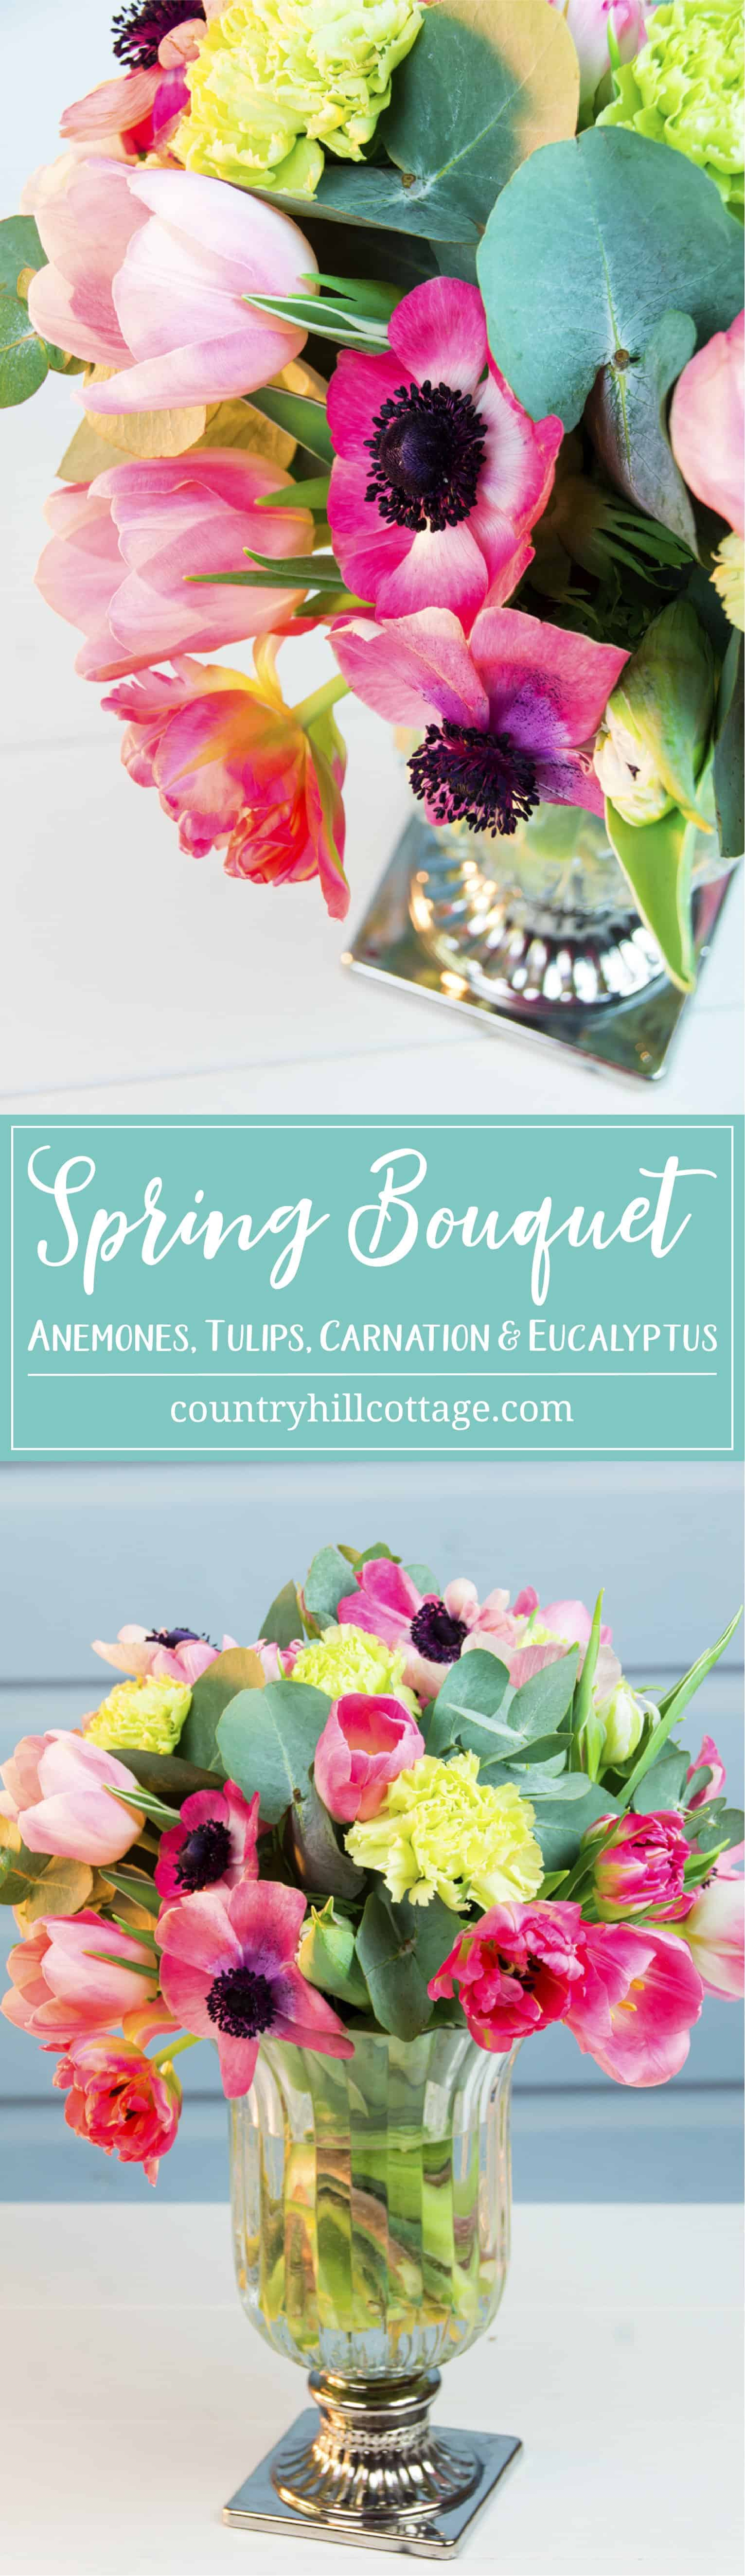 Bring on the spring blooms and create a fast and fresh spring bouquet with our seasonal favourites! The florals include French tulips, parrot tulips and anemones in pink and blush, which we paired with light green carnations and beautiful silver dollar eucalyptus. We used a tall vintage vase with a flared opening on a silver pedestal. #spring #bouquet #tulip #anemone #eucalyptus  countryhillcottage.com